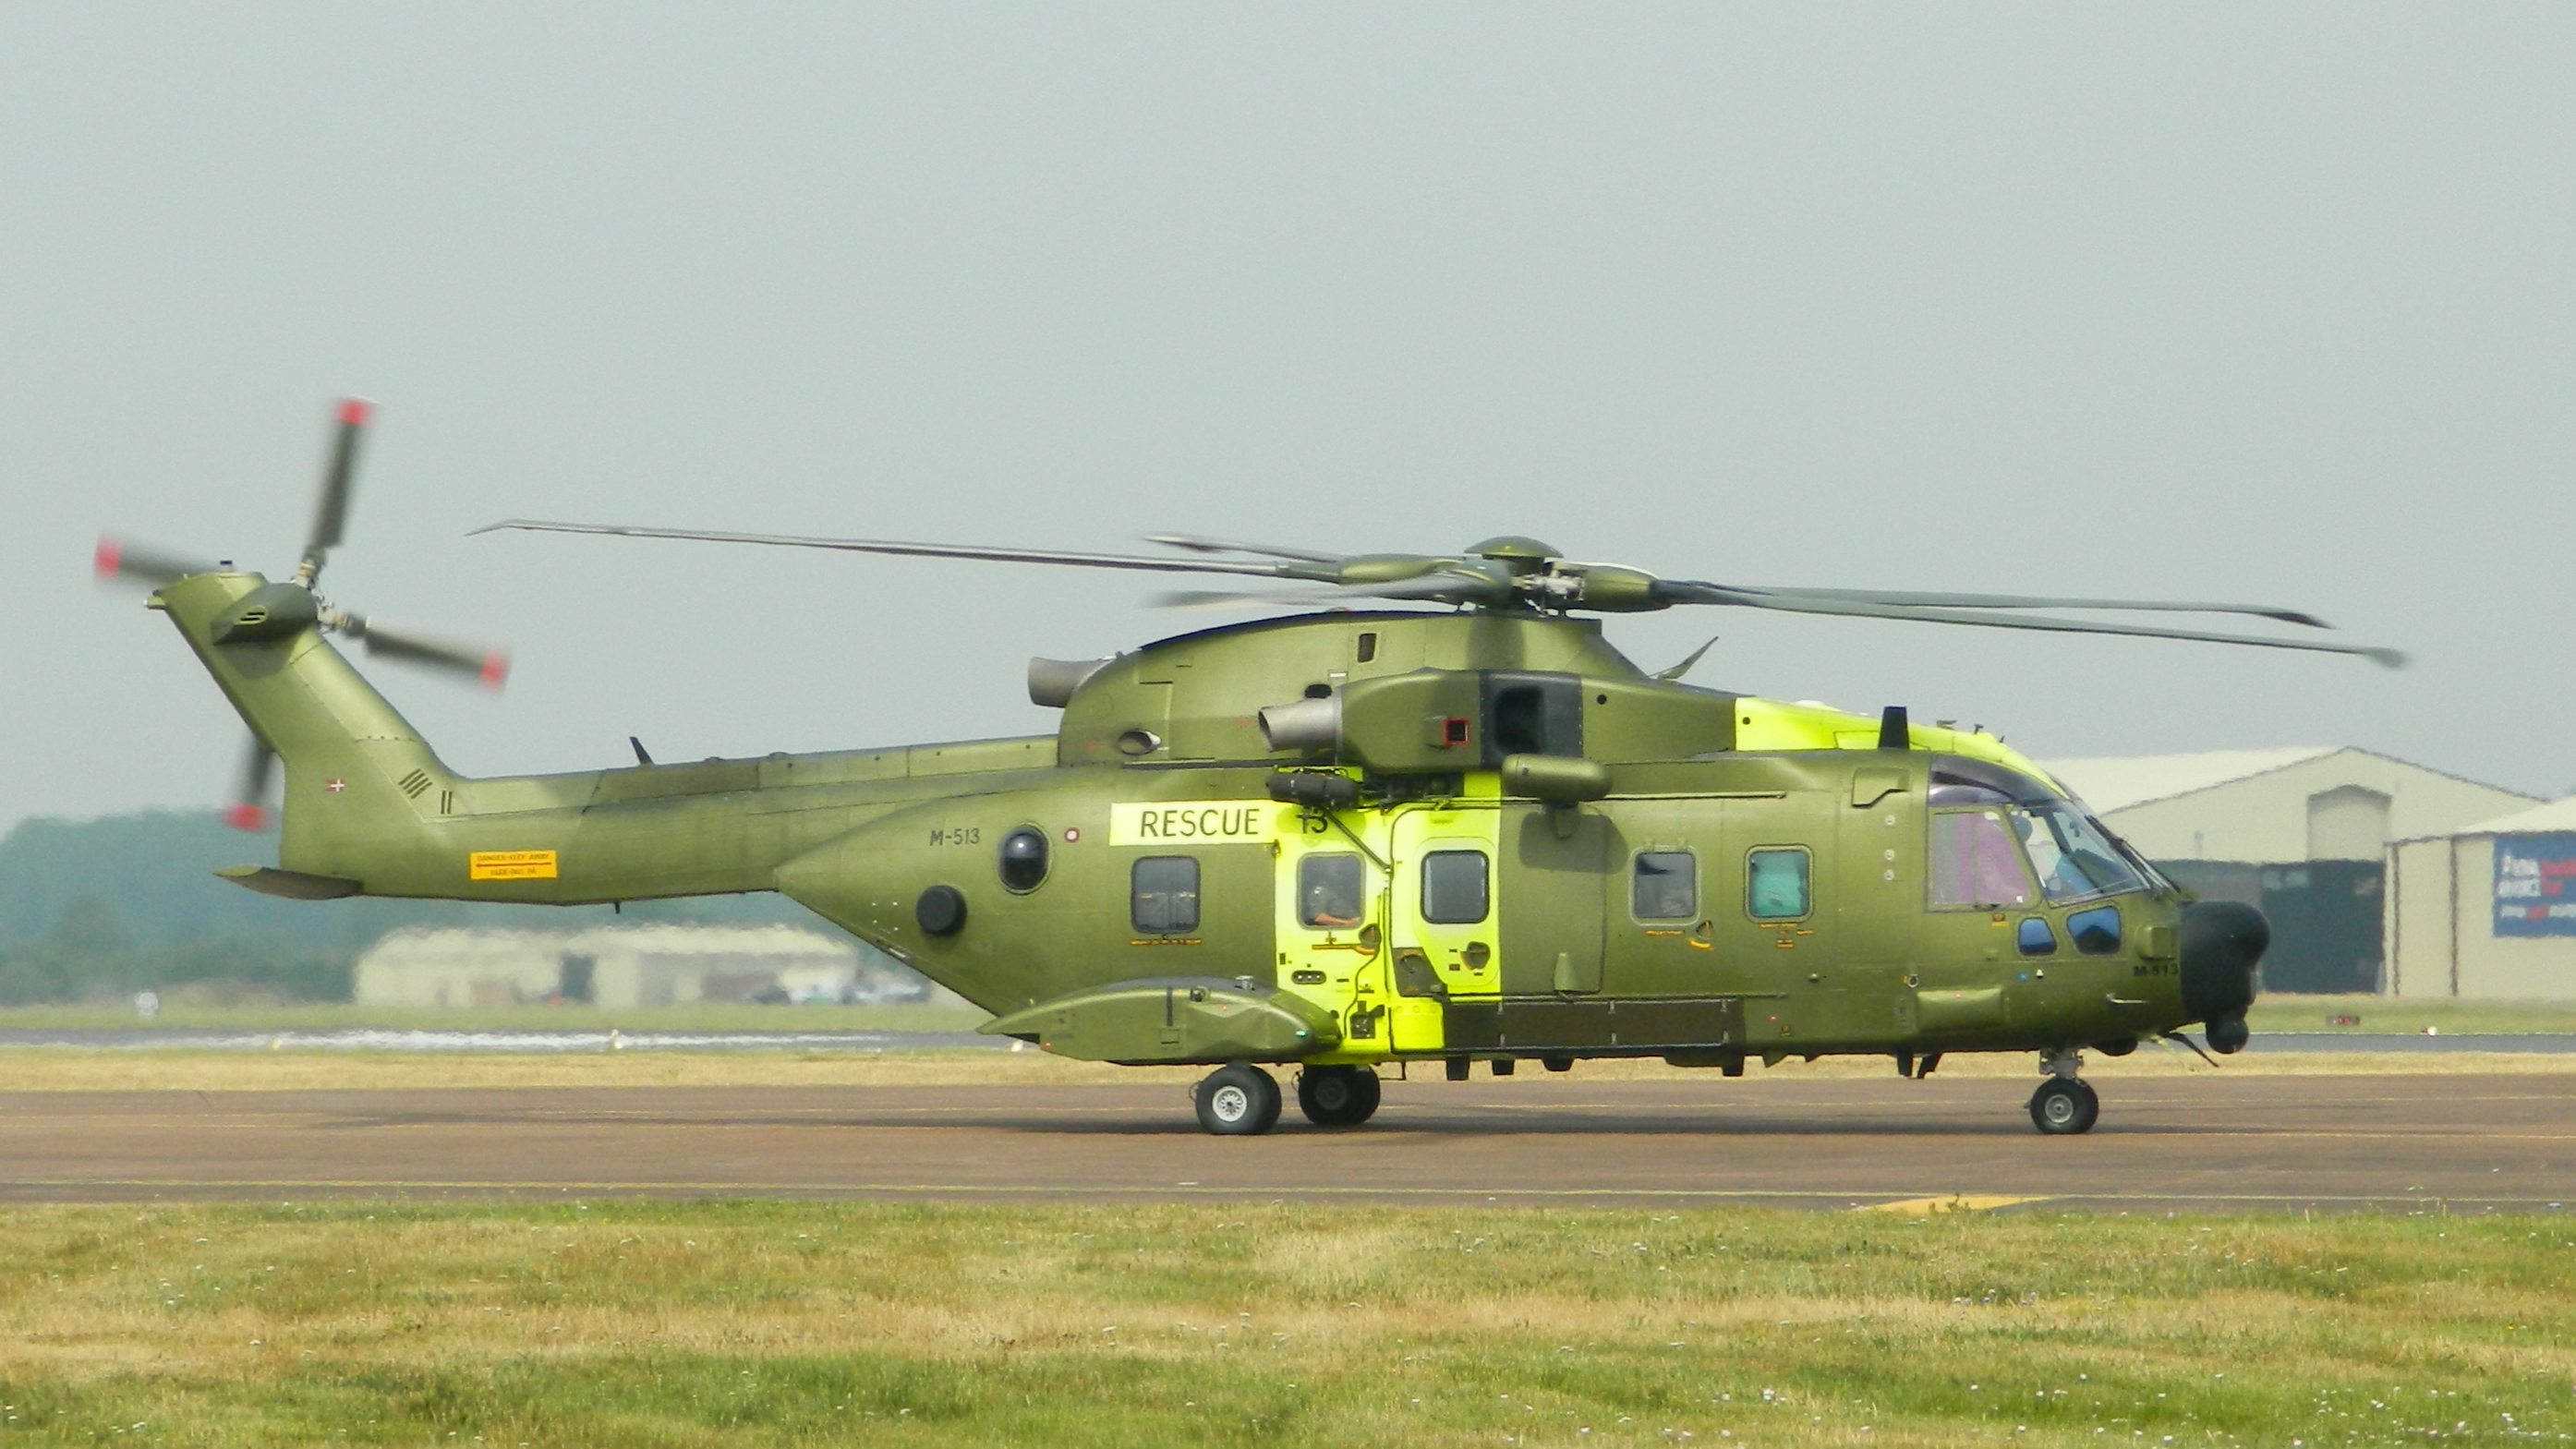 search and rescue helicopter with File A2524 Denmark Aw101 M 513 Riat2013 on Search year in addition Anek Lines Ferry Blaze moreover Watch also File Pilatus pc 21 2 additionally File A2524 Denmark AW101 M 513 RIAT2013.